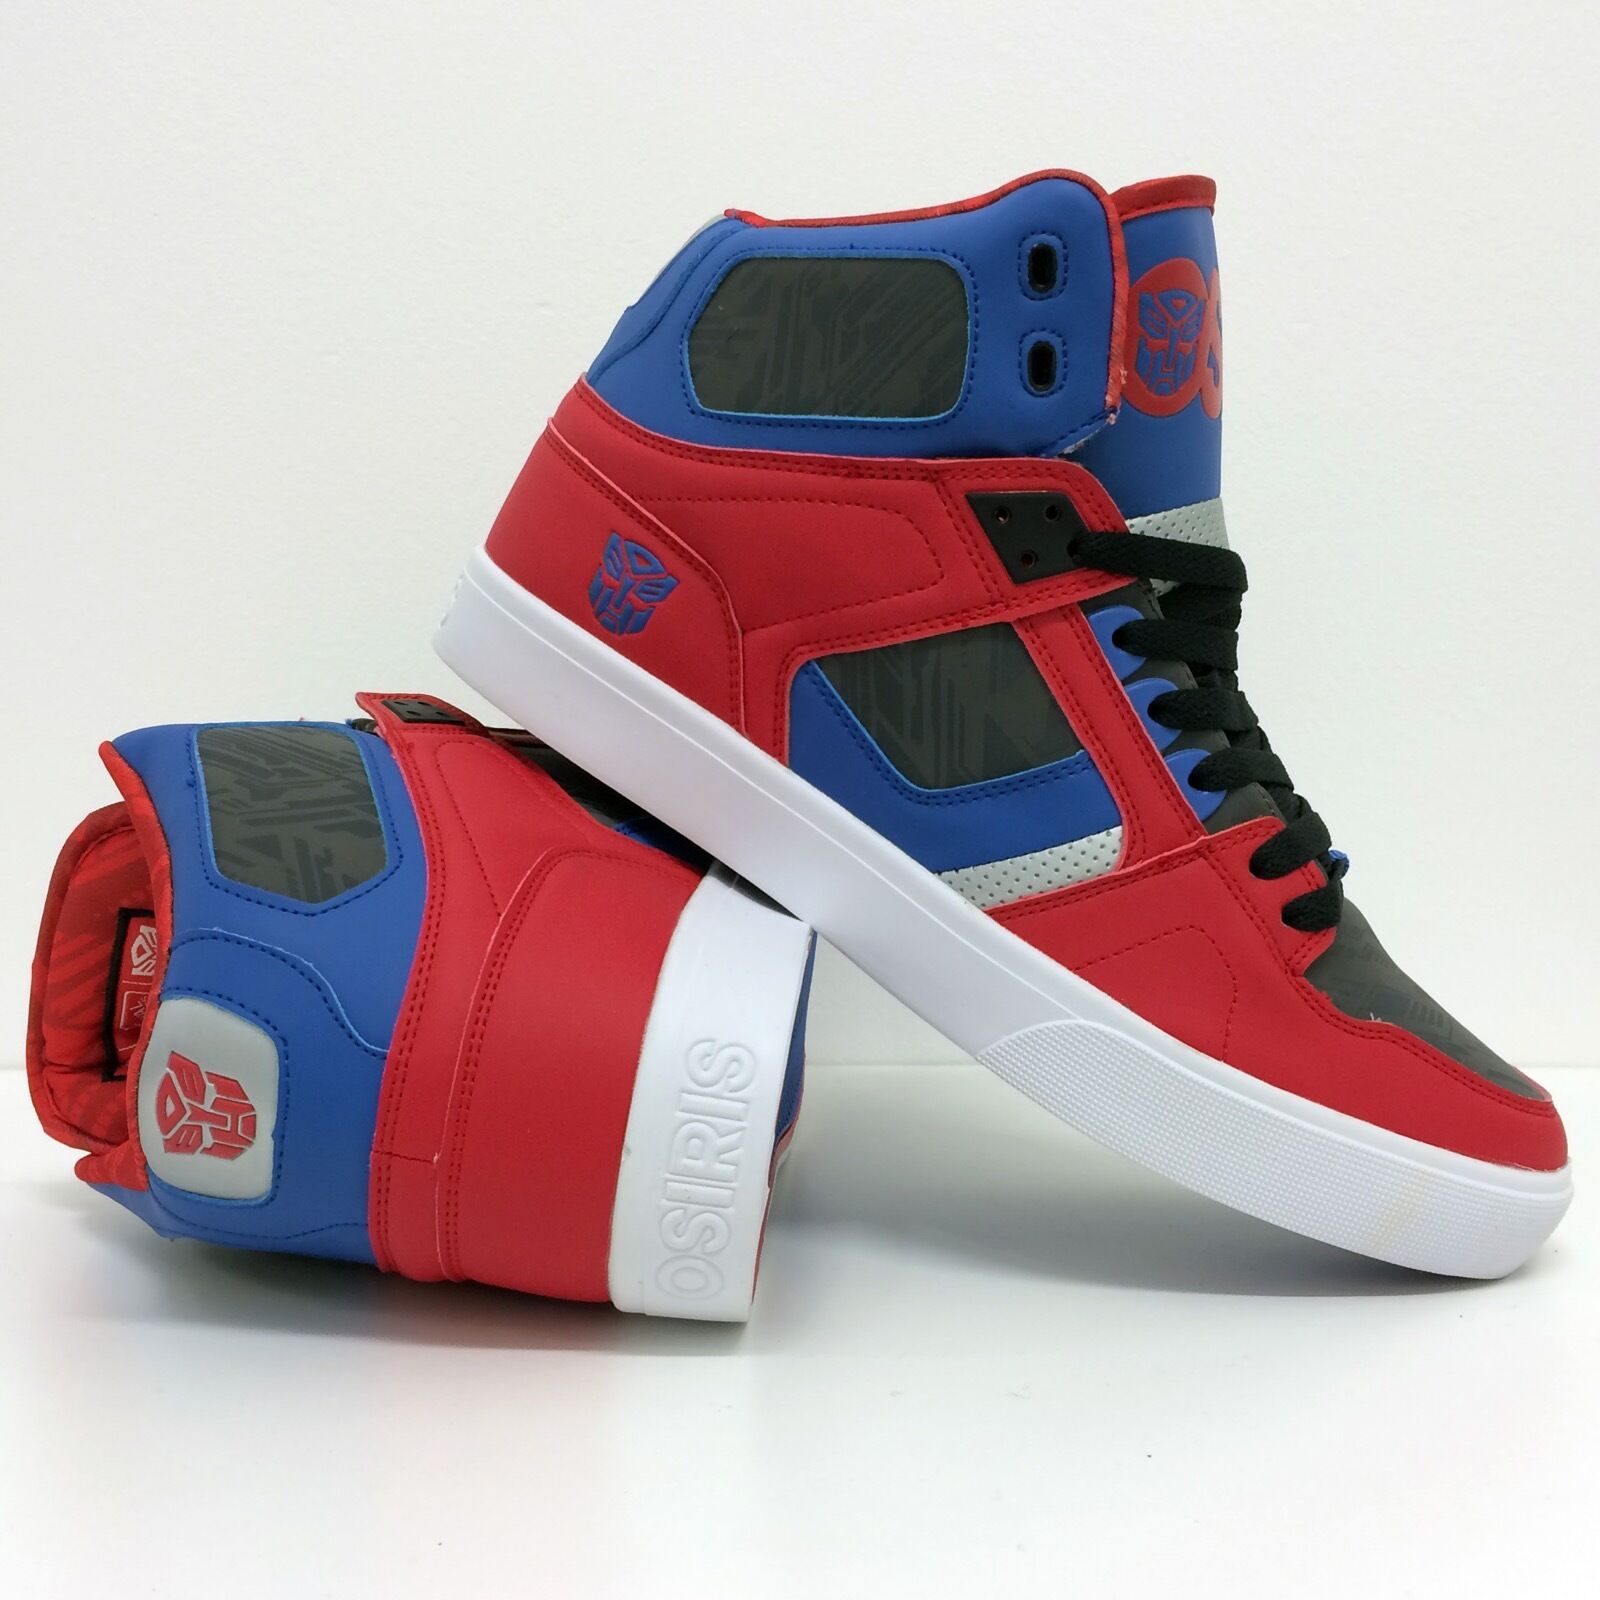 OSIRIS SHOES TRANSFORMERS NYC 83 RED VLC OPTIMUS PRIME  RED 83 BLUE HI TOP TRAINERS de3ab2